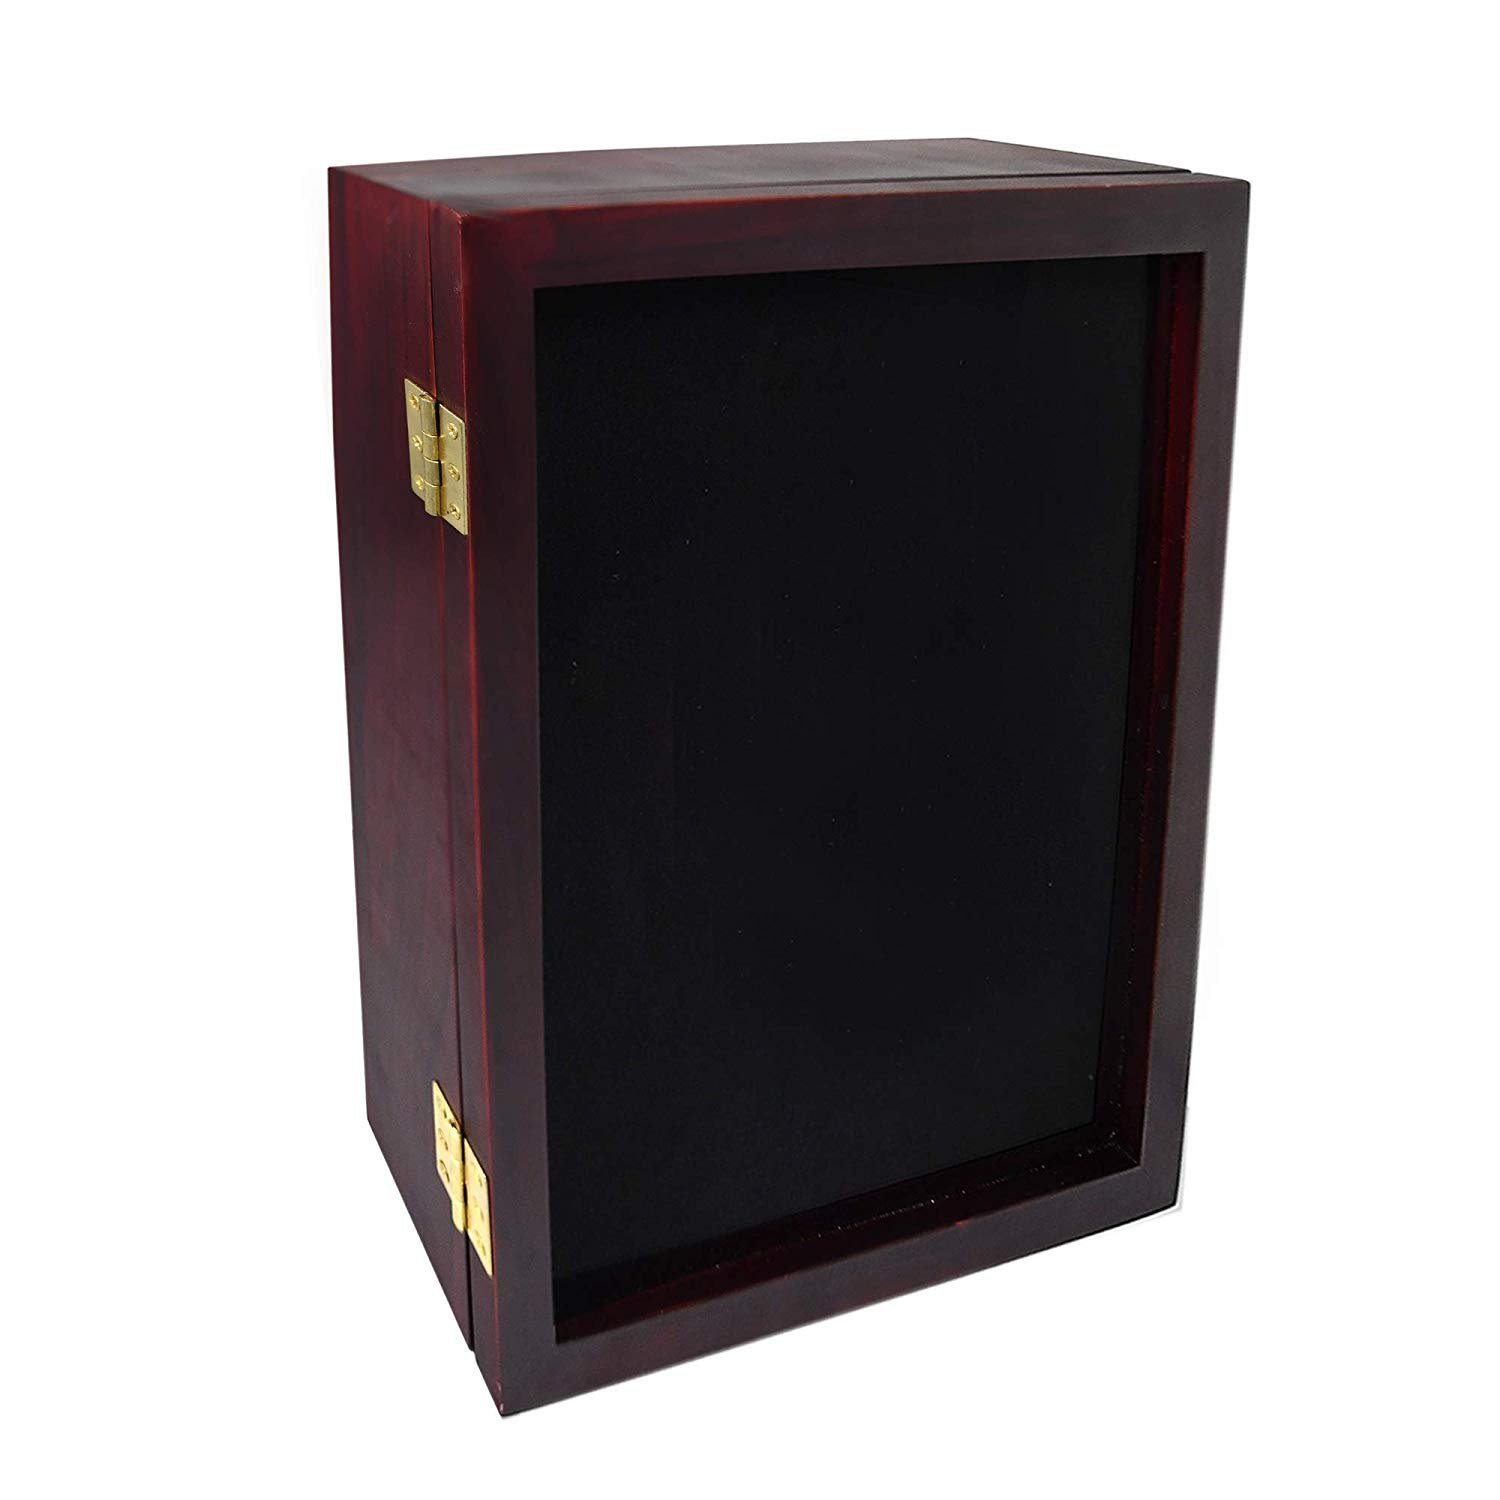 ForeverFrames - 12x15x2 Shadow Box Display Case   Magnetically Opens and Closes like a Door - Real Wood, Strong Glass, Linen Background   Cherry Red   For Wall and Desktop. Protect Important Memories by Forever Frames